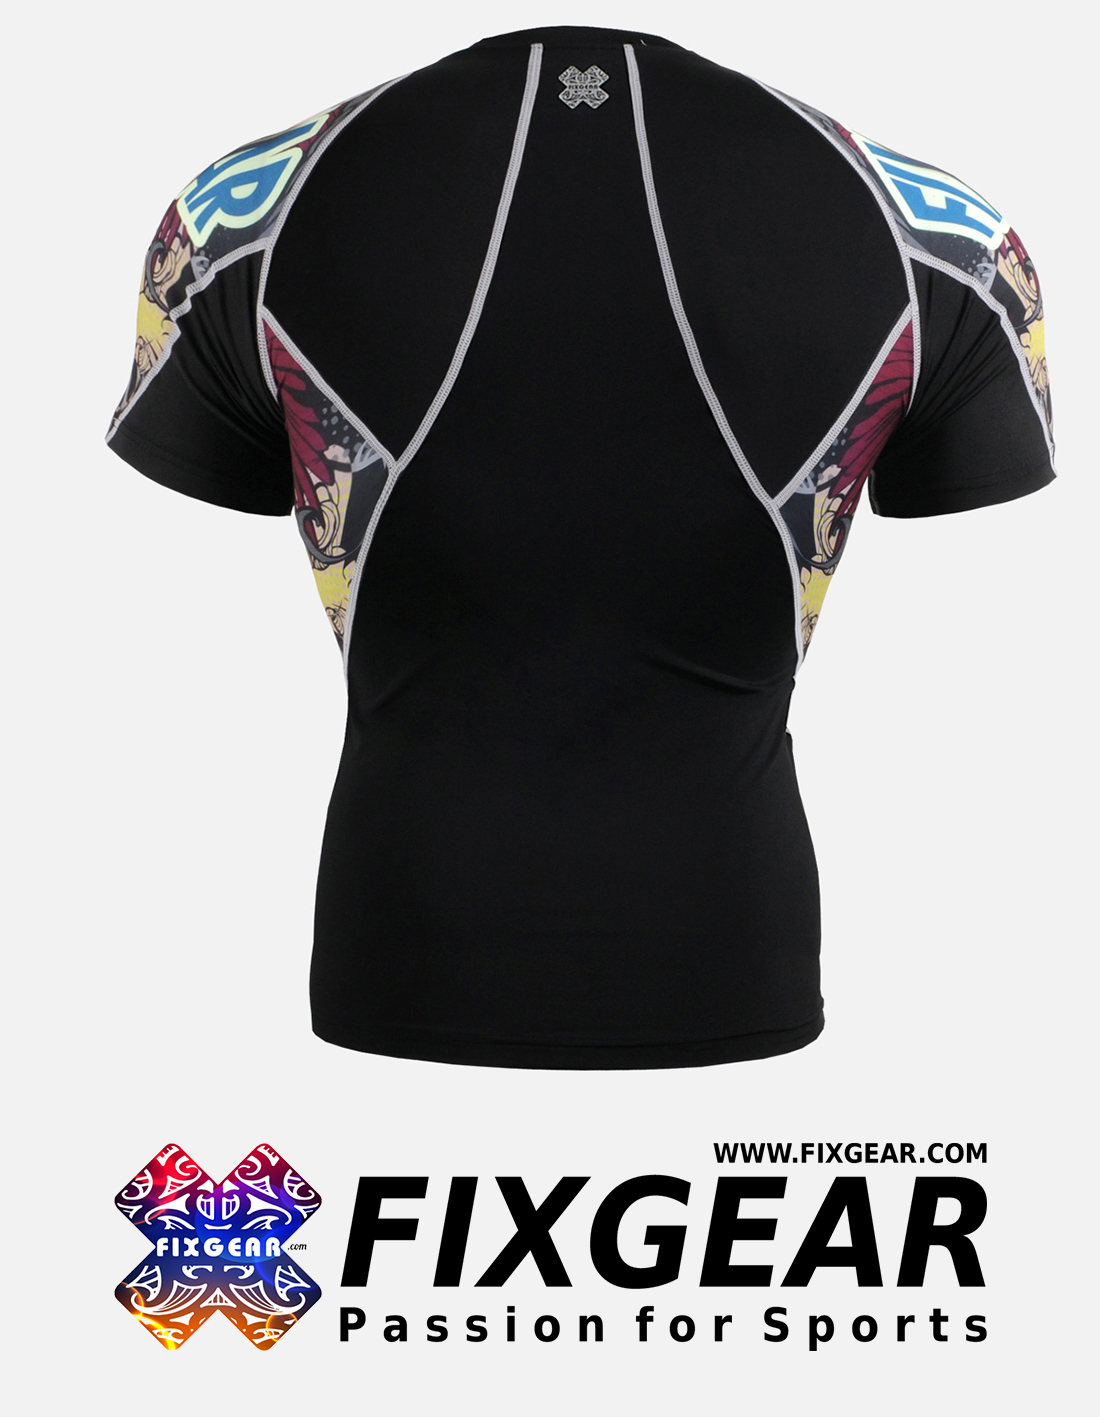 FIXGEAR C2S-B44 Compression Base Layer Shirt Short Sleeve